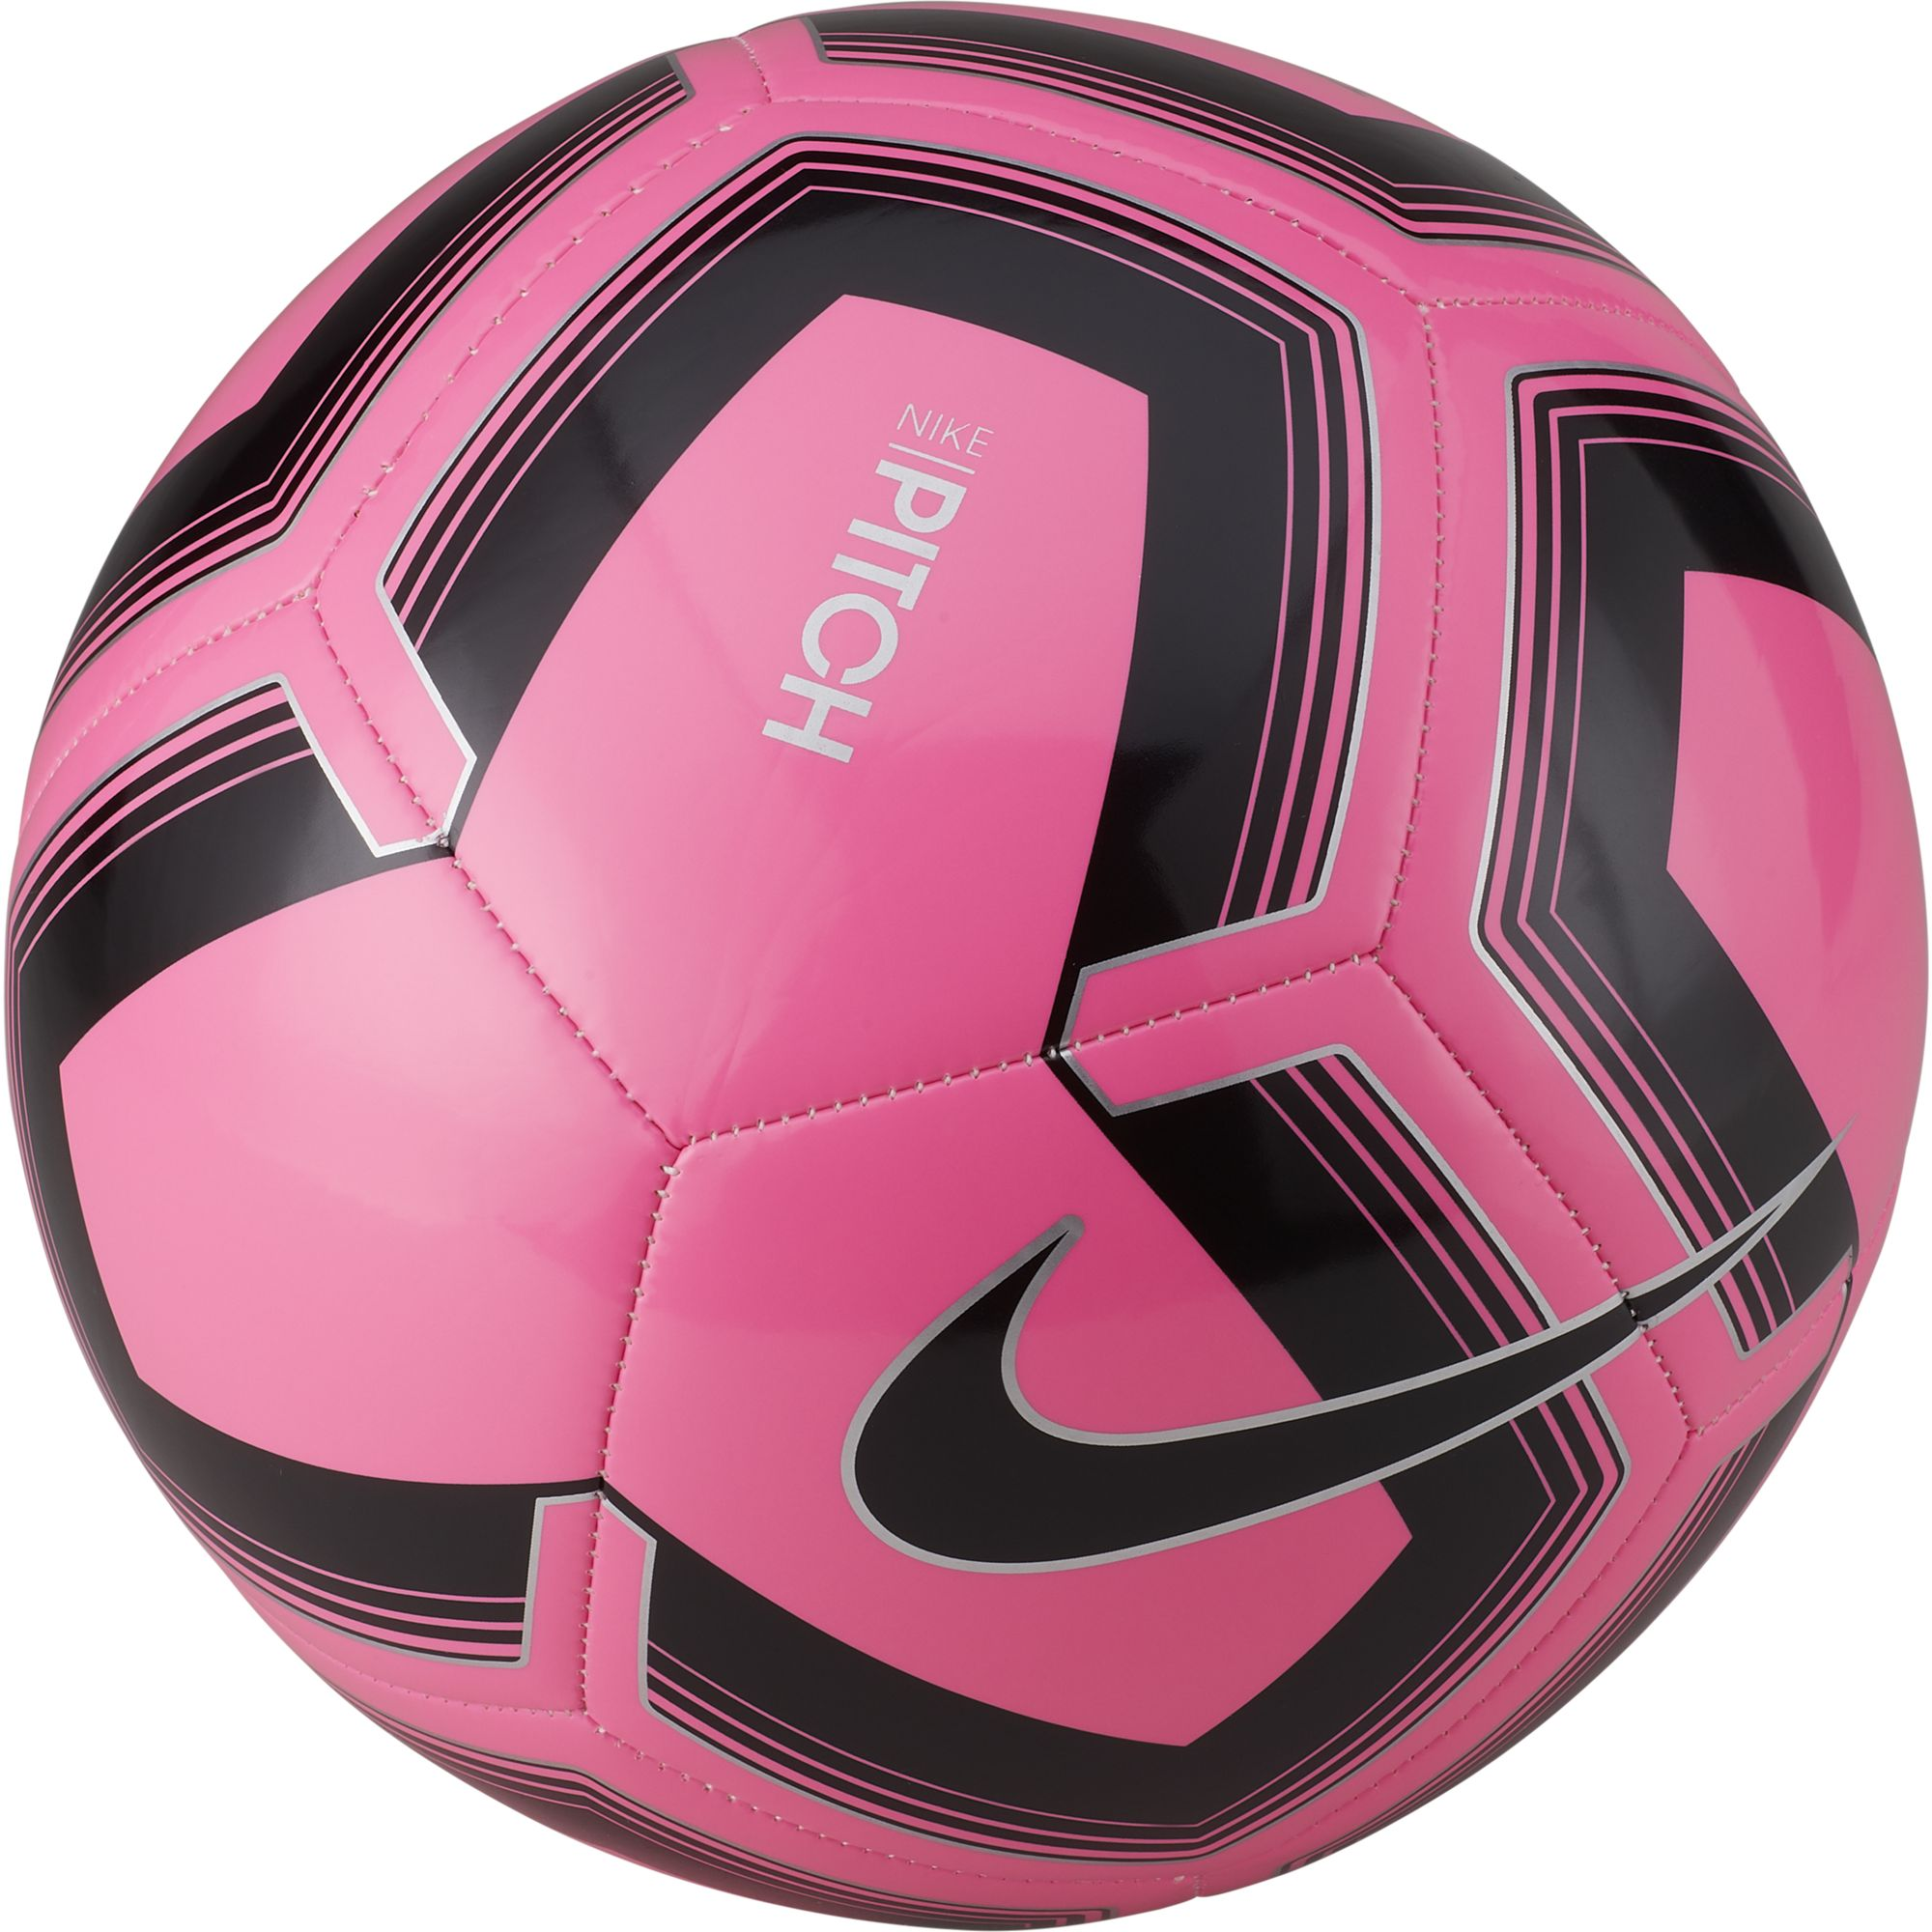 Pitch Training Soccer Ball, Pink/Black/Gray, swatch